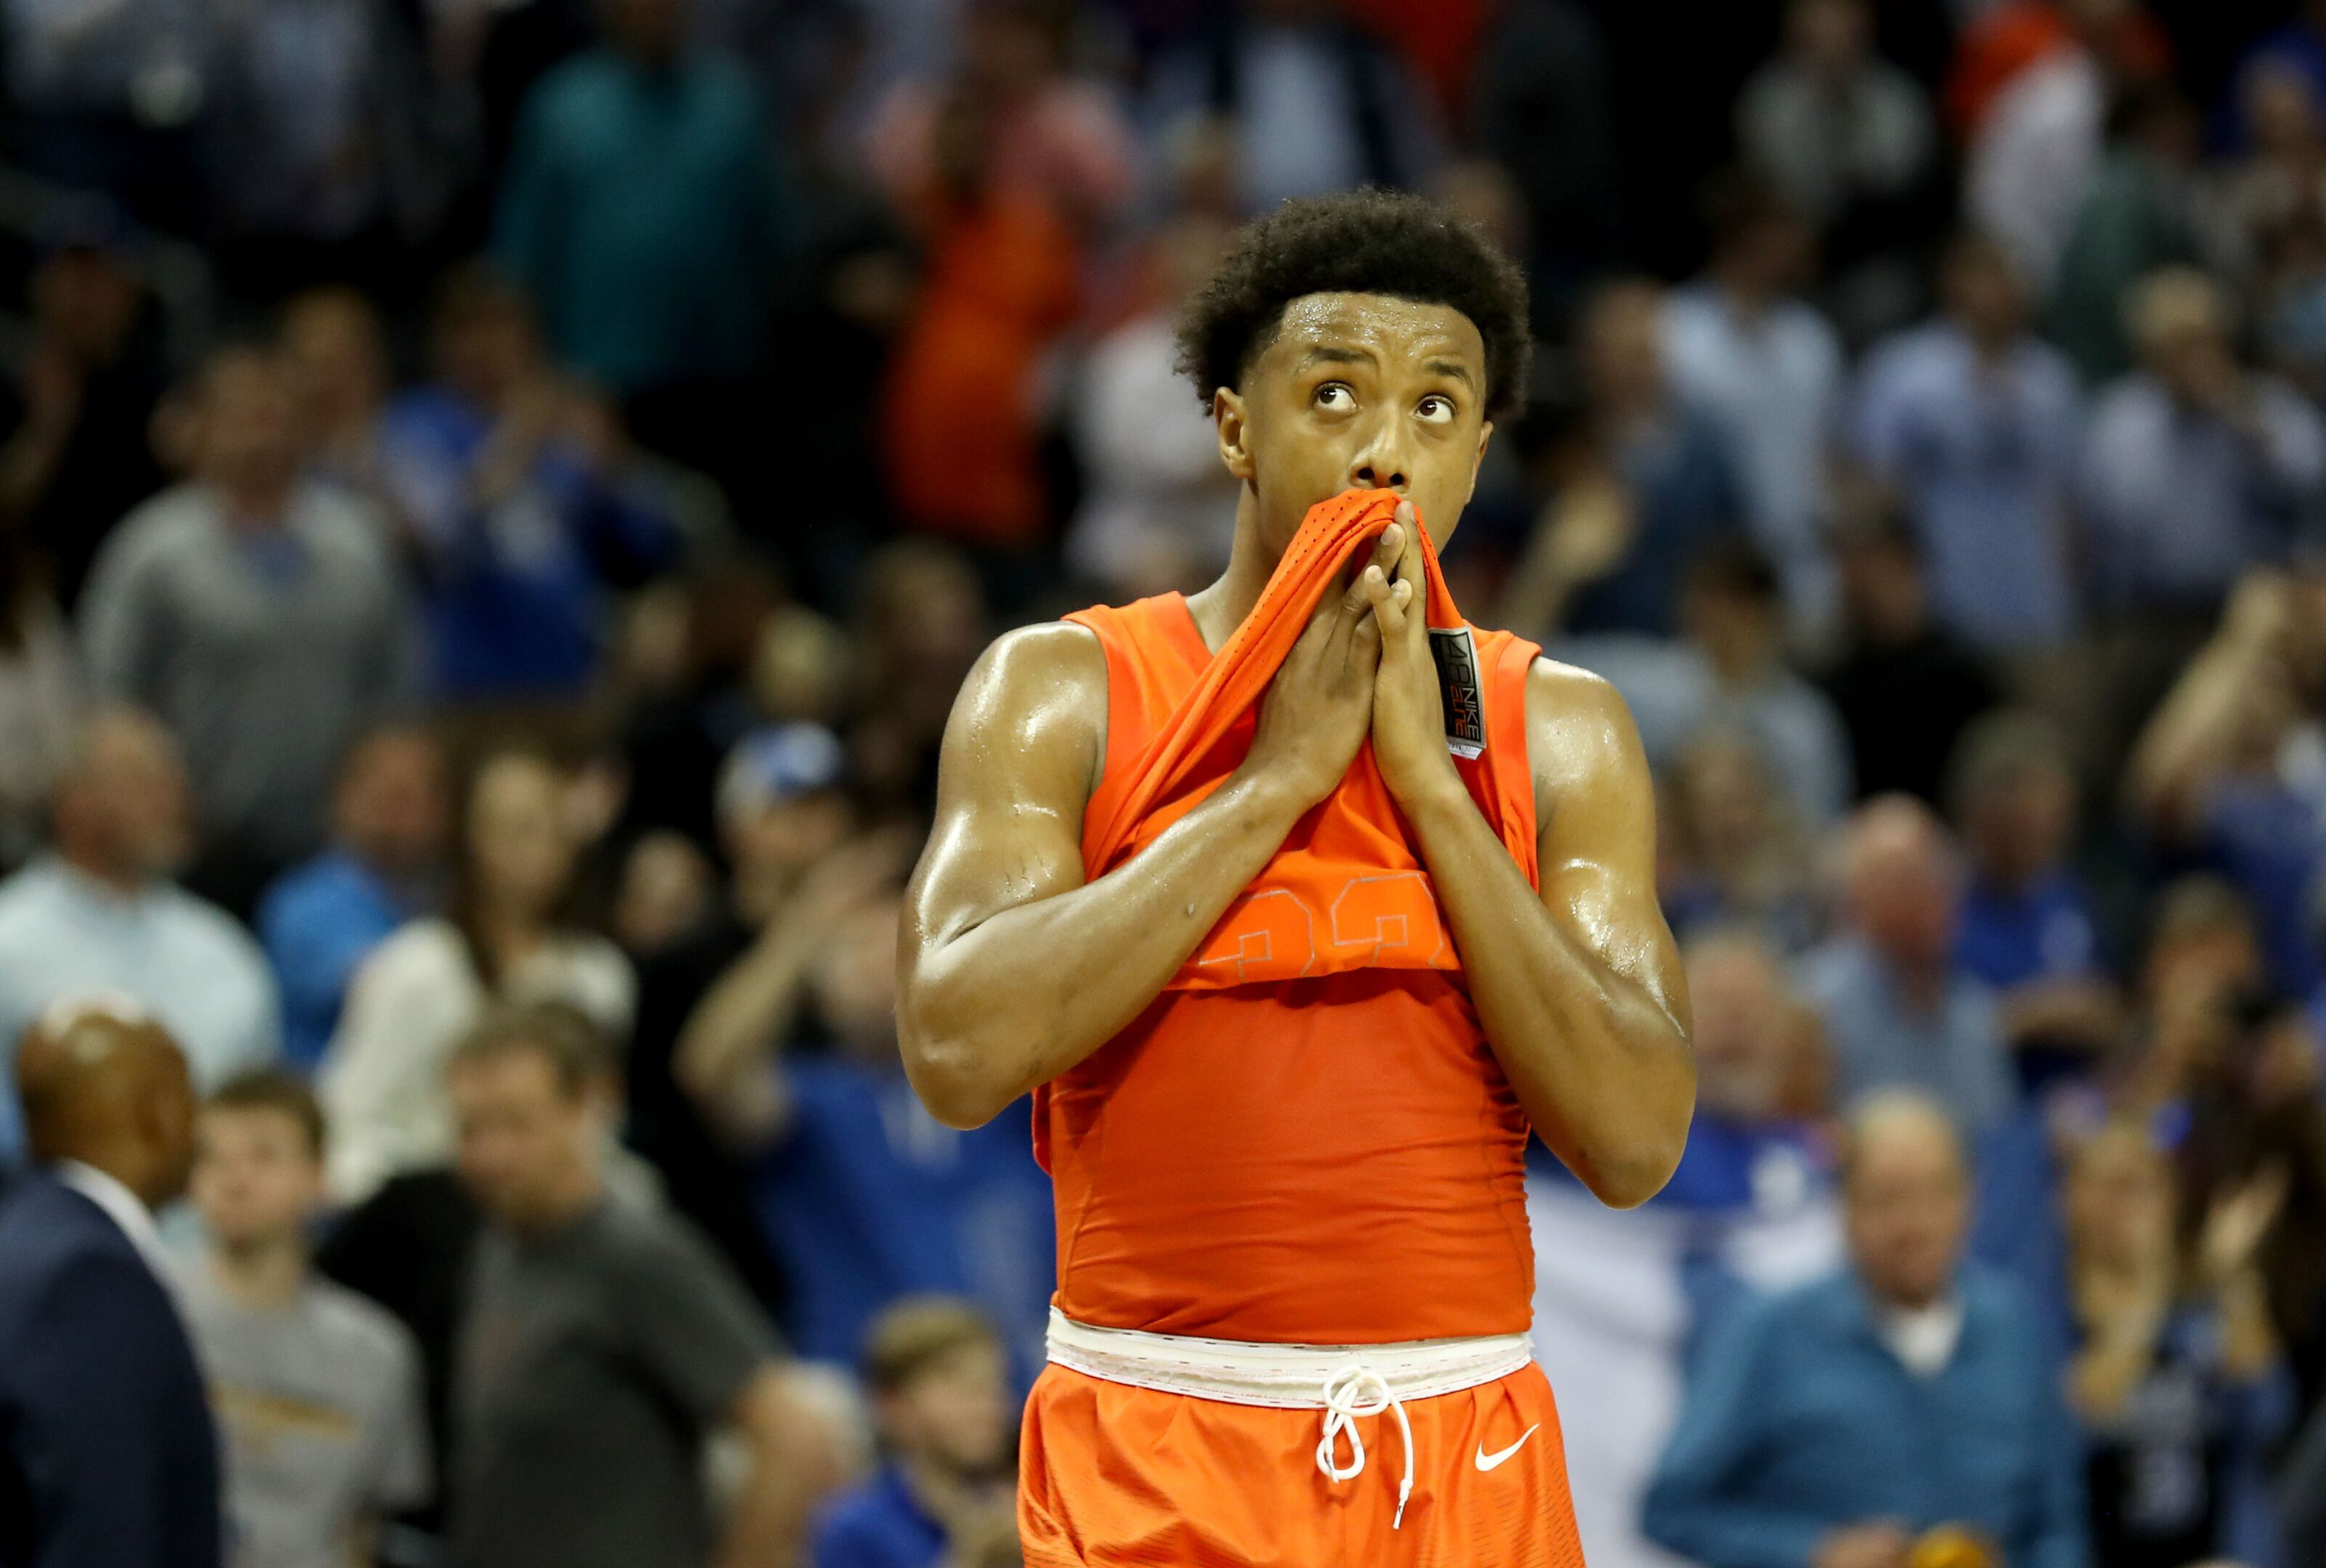 Syracuse Basketball: Top 5 March Madness Matchups For SU